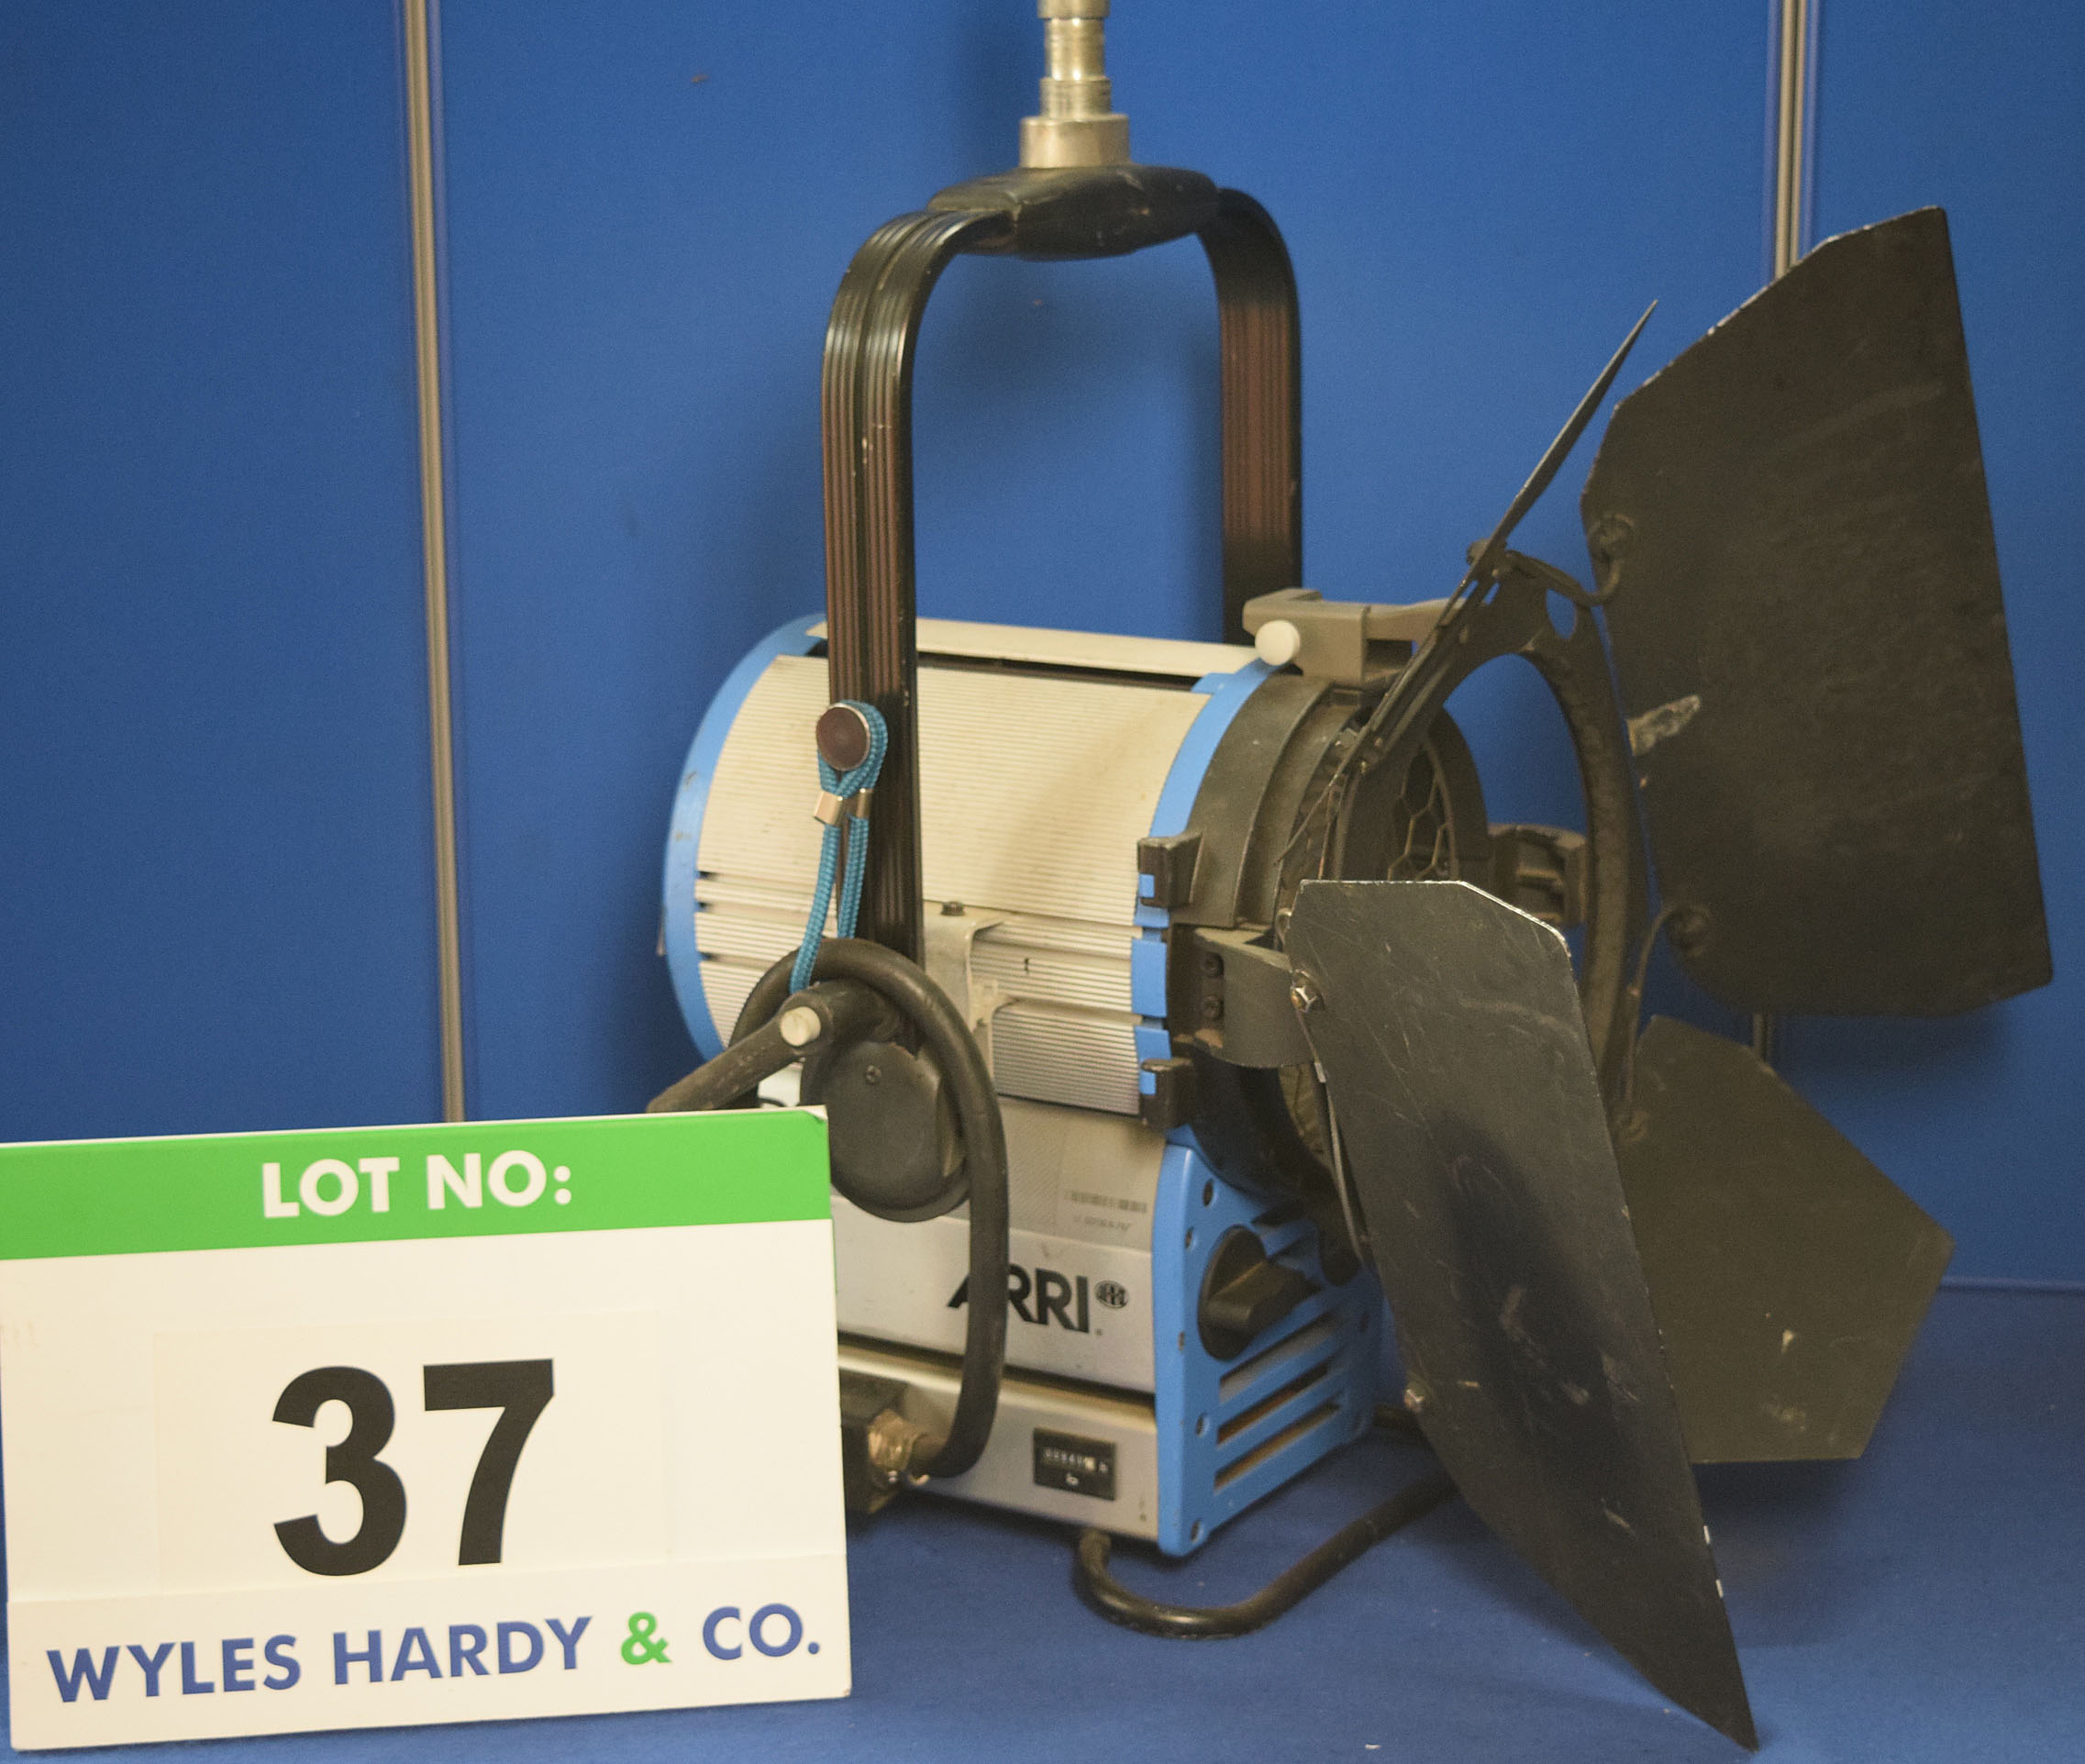 Lot 37 - An ARRI D12 1200W Light with fitted Barn Doors and Stirrup Mount. Recorded Hours: 940 hours